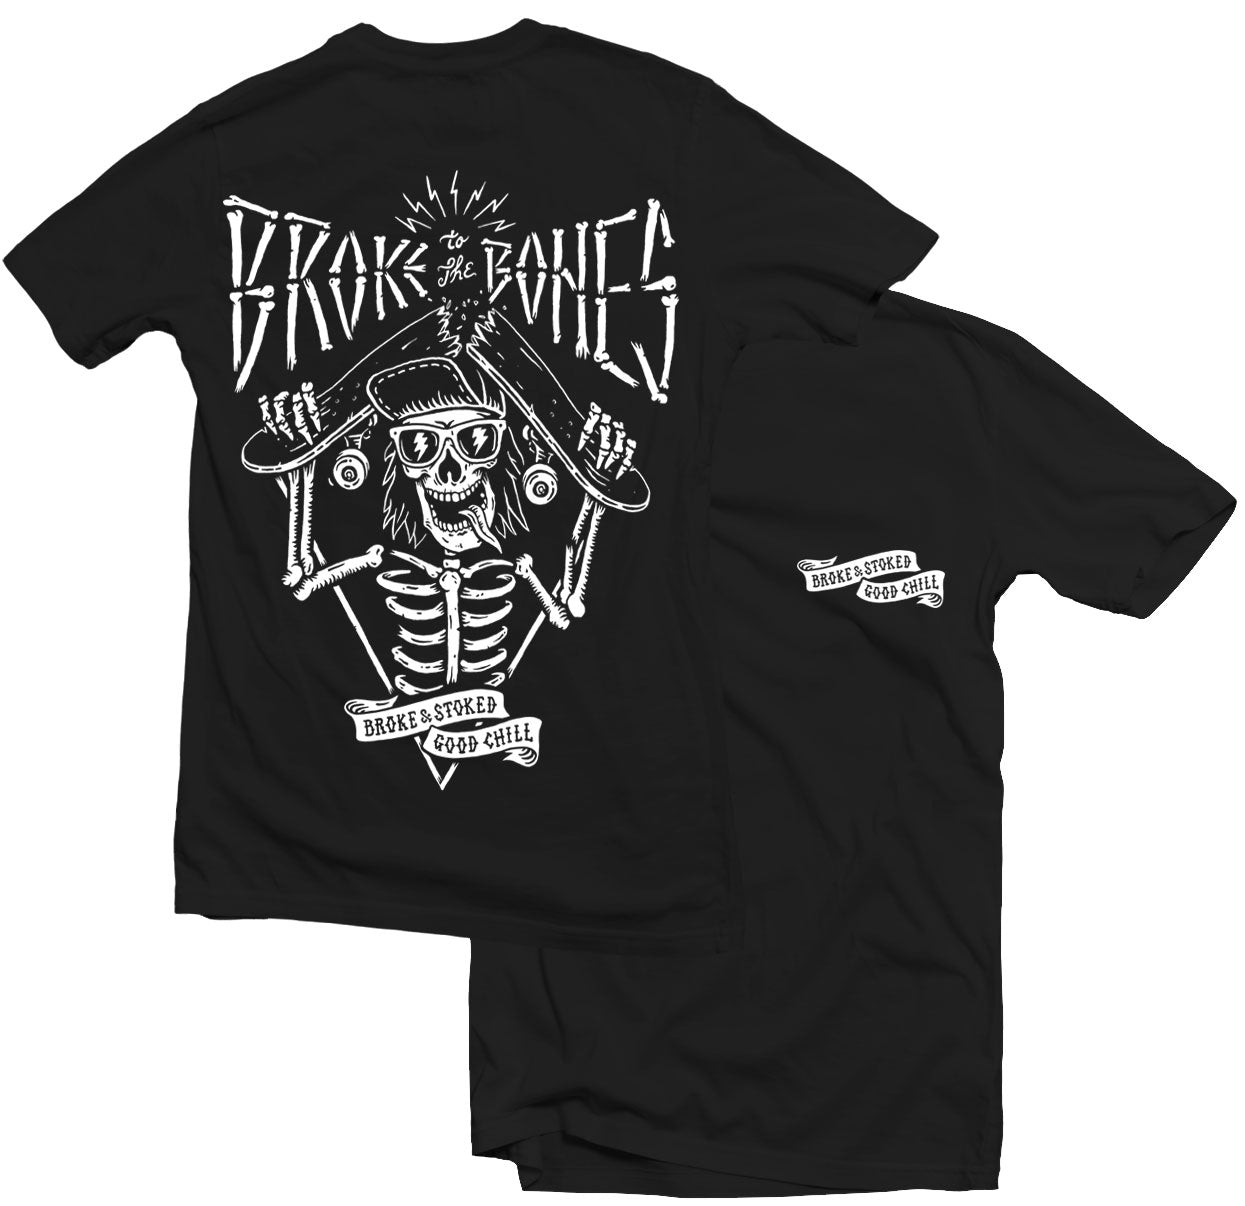 BROKE TO THE BONES - TEE